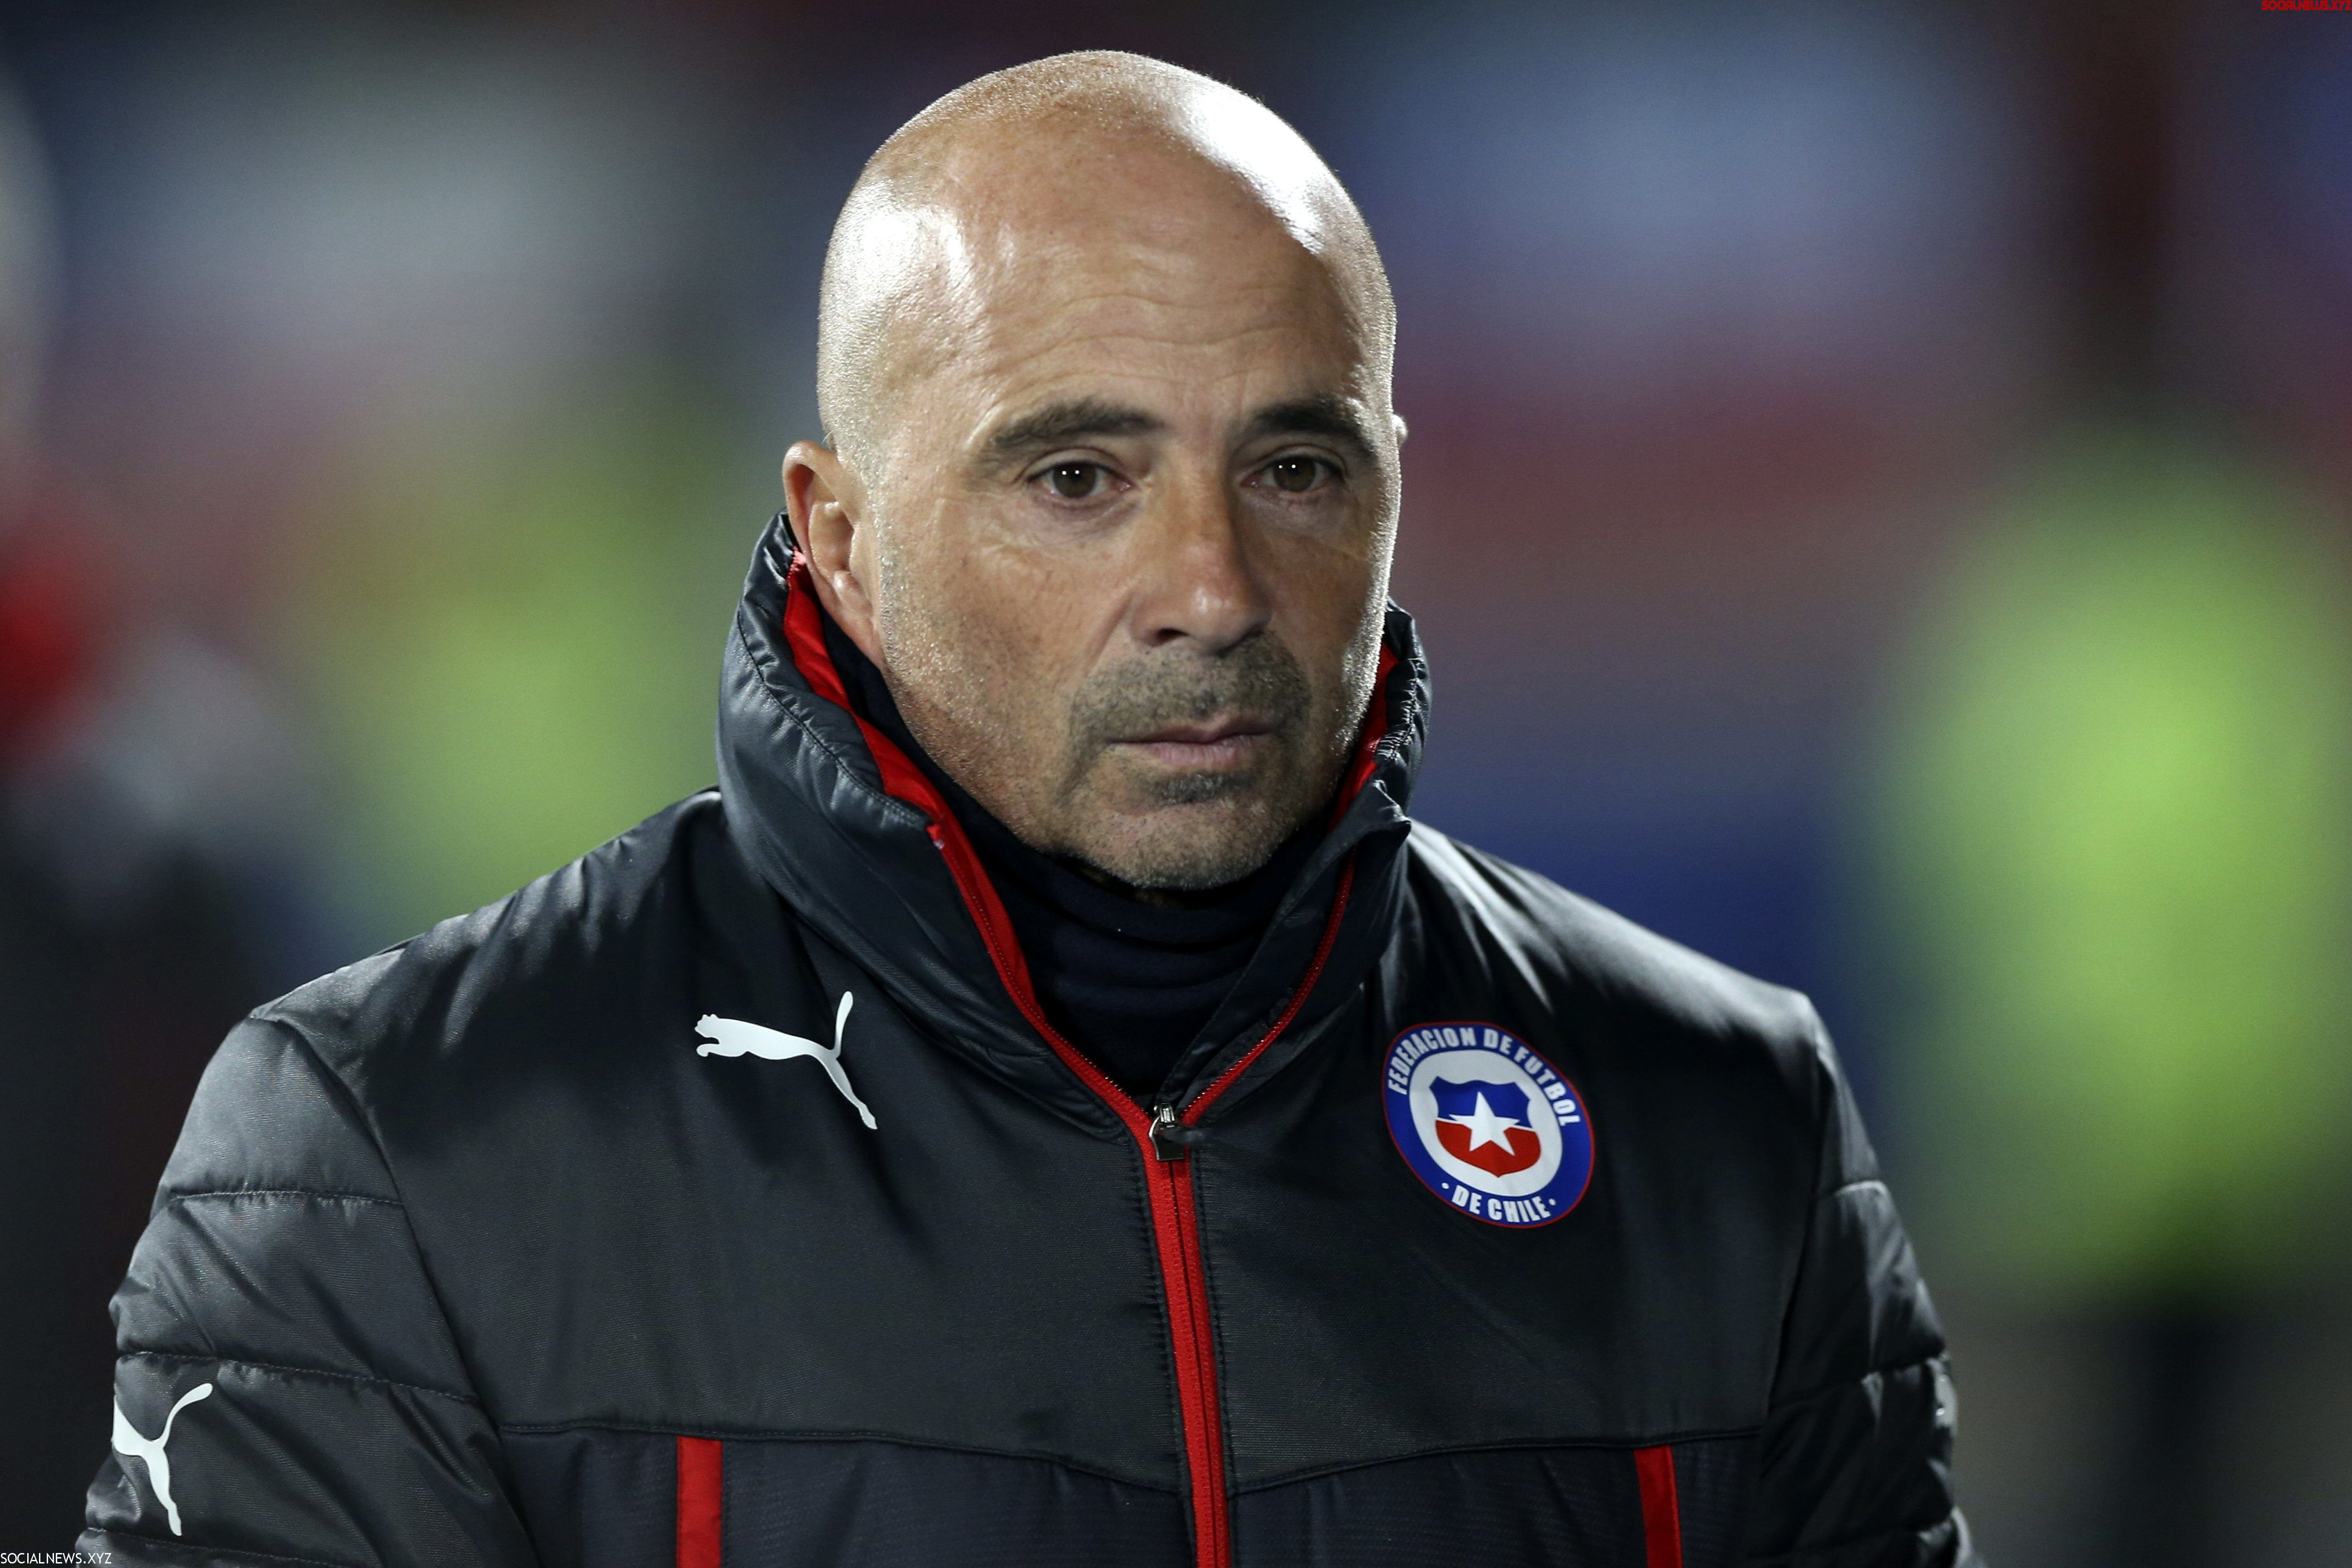 Sevilla coach Sampaoli says he can't turn down offer to coach Argentina